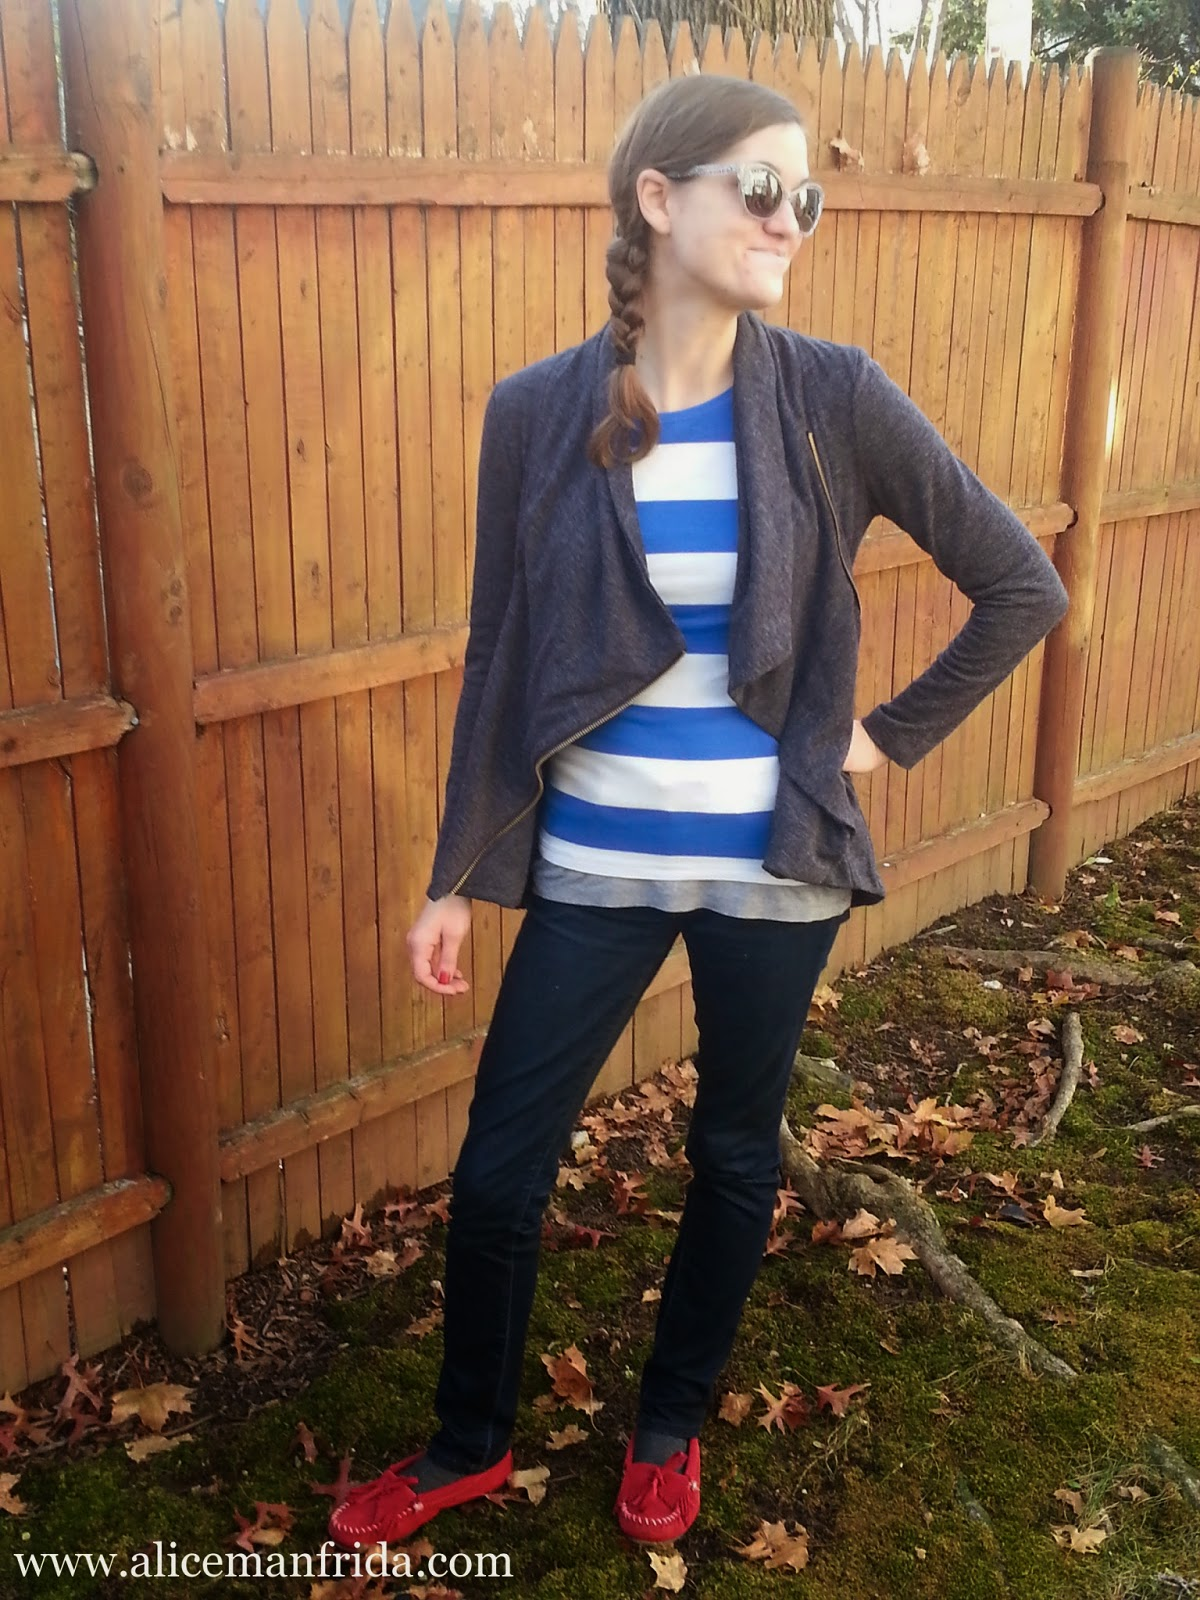 style, autumn fashion, ootw, ootd, outfit of the day, Alice Manfrida